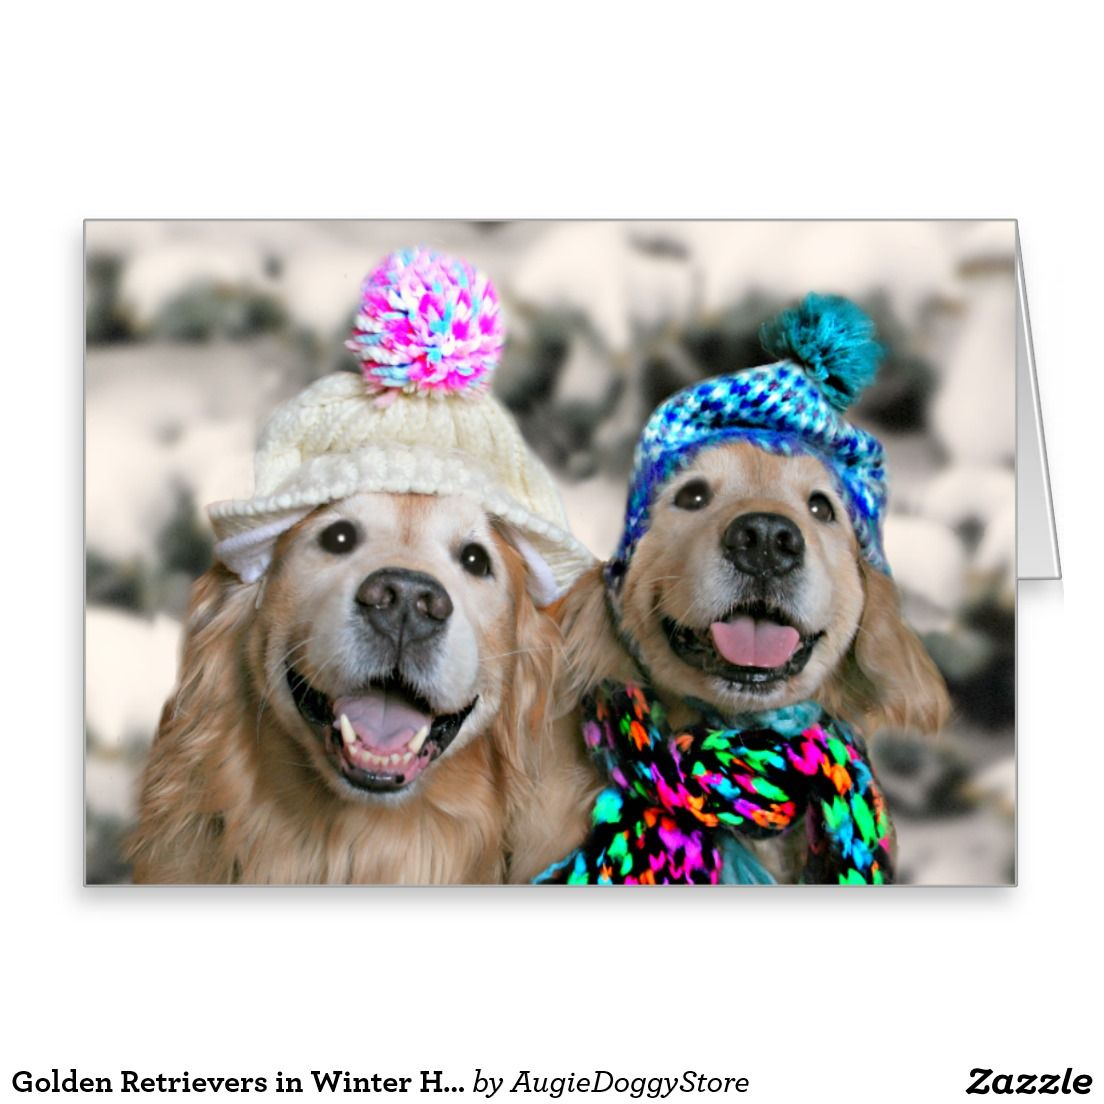 Golden Retrievers In Winter Hats Holiday Christmas Card Christmas